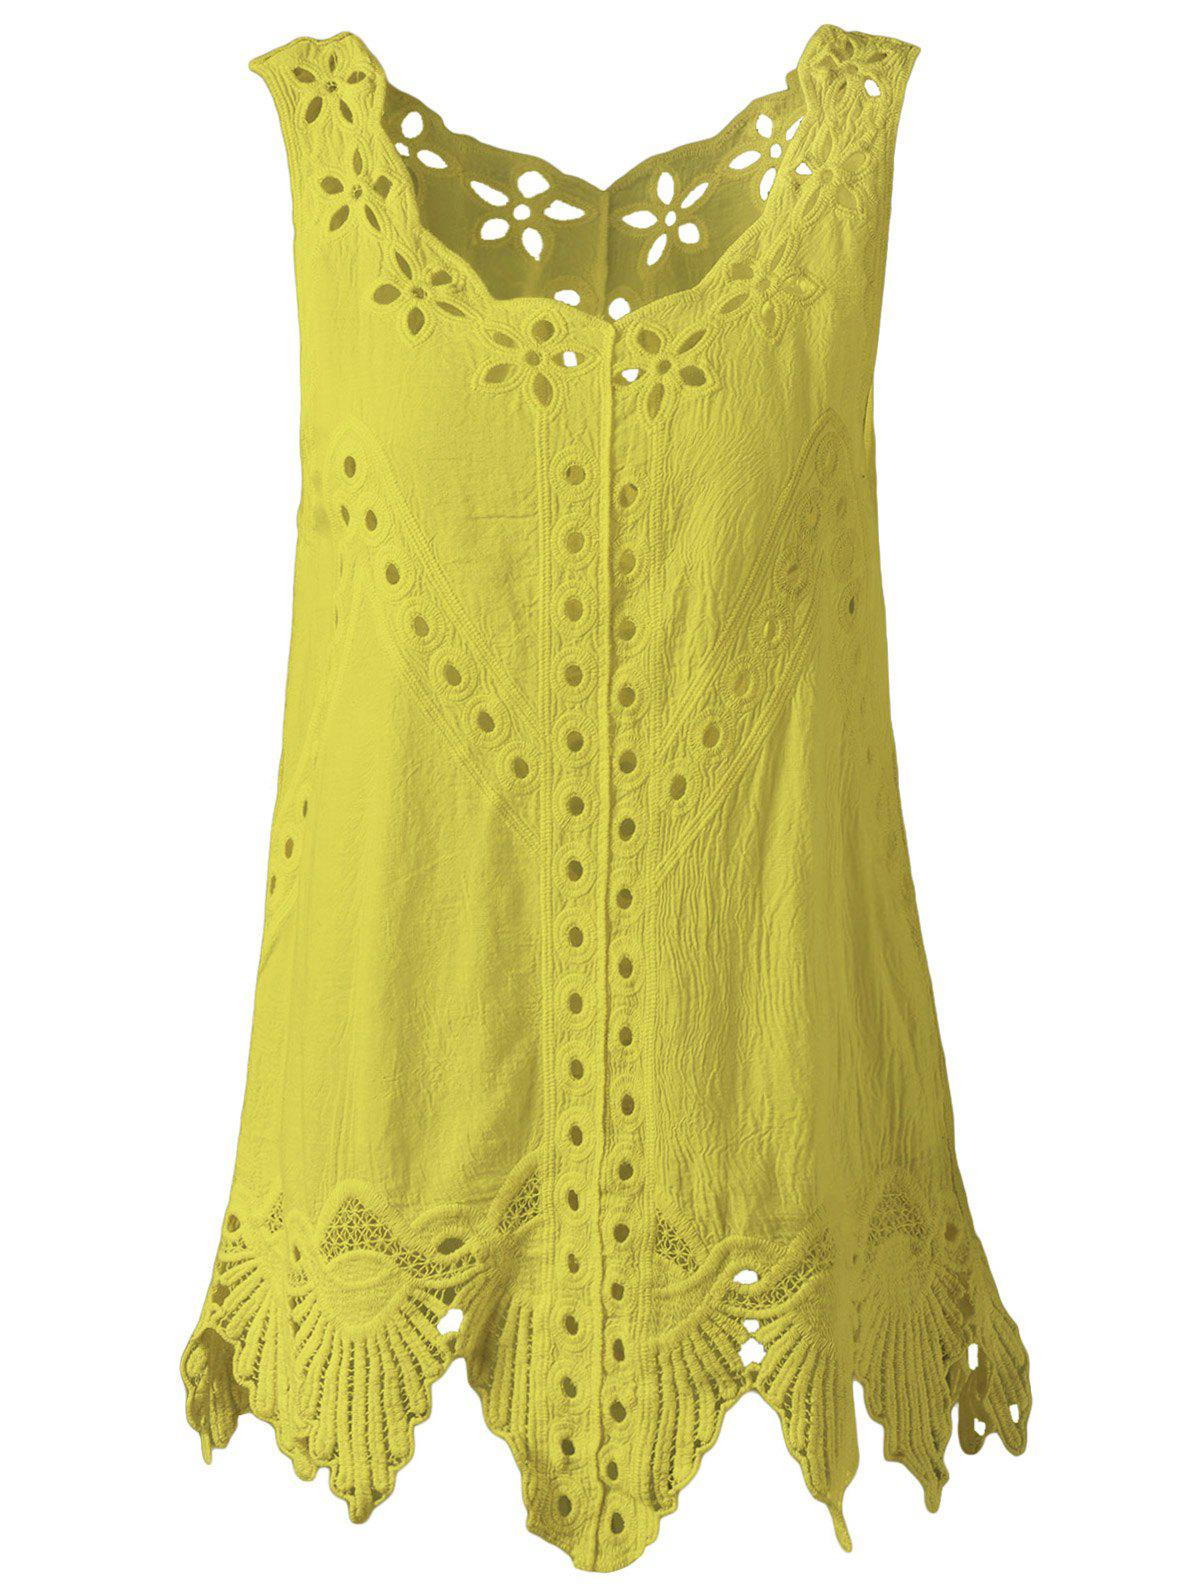 Bohemian Women's Scoop Neck Solid Color Crochet Sleeveless Blouse цена и фото